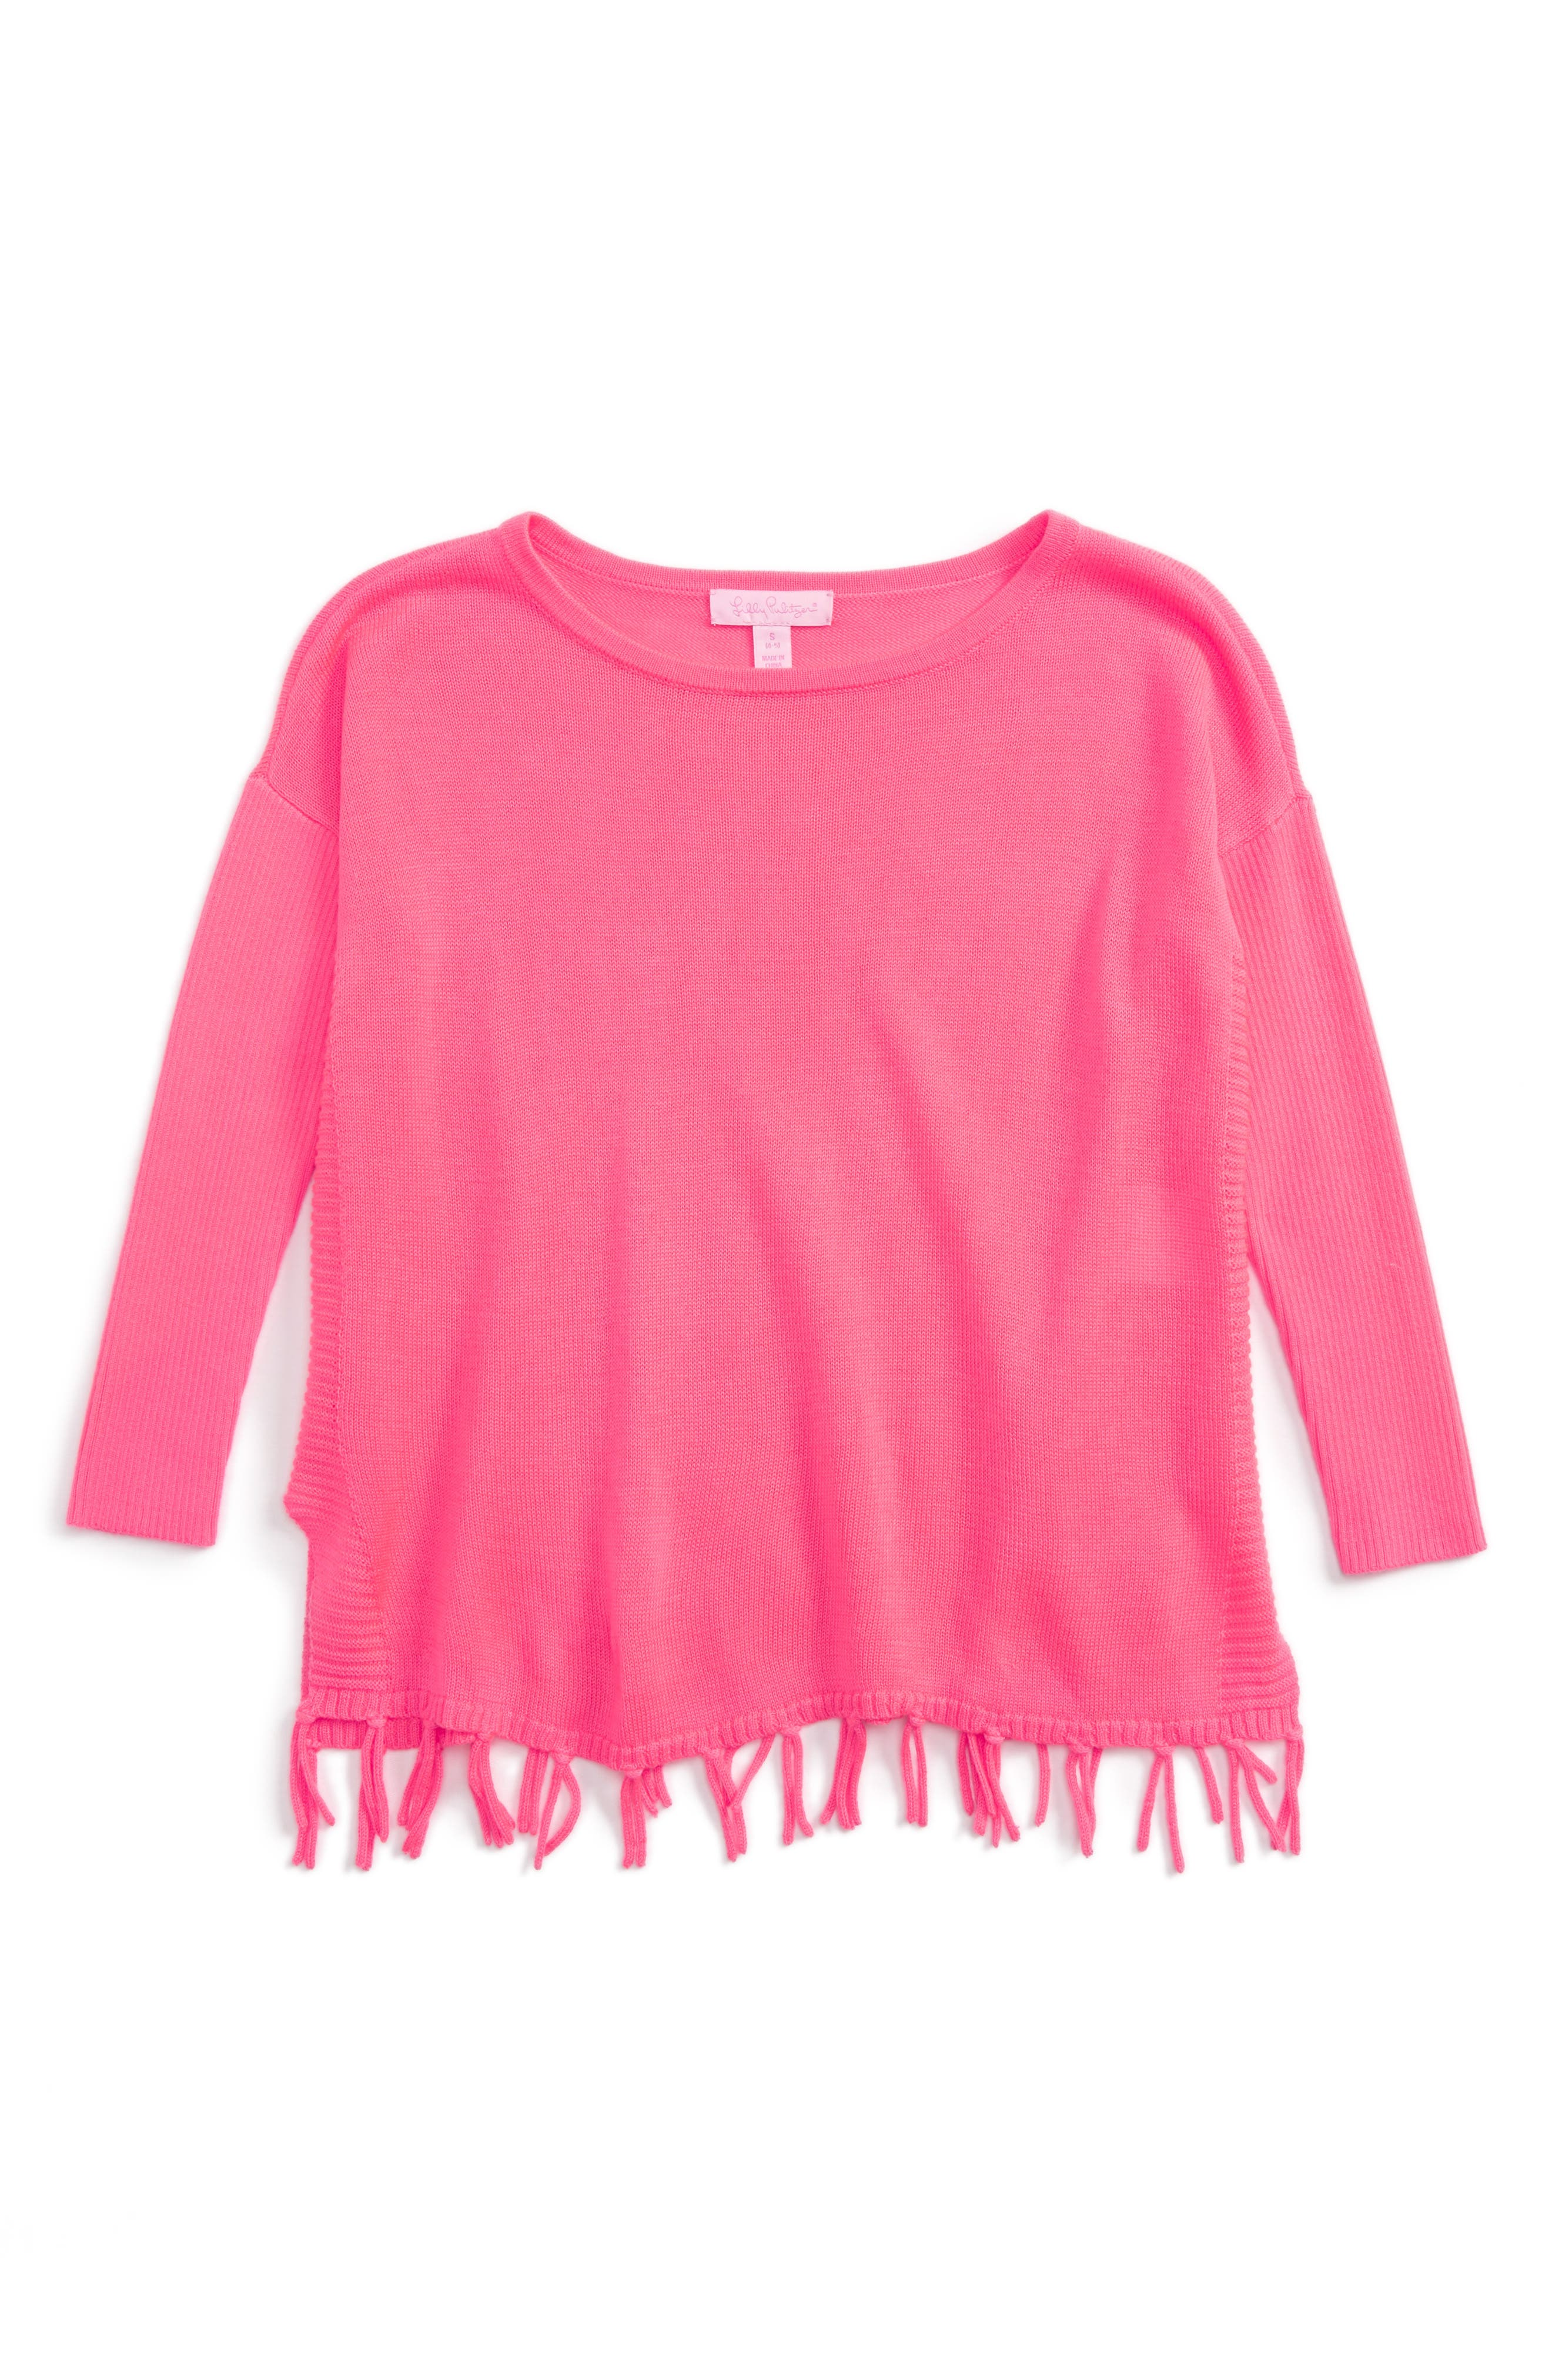 Lilly Pulizter<sup>®</sup> Mini Ramona Sweater,                         Main,                         color, Colony Coral